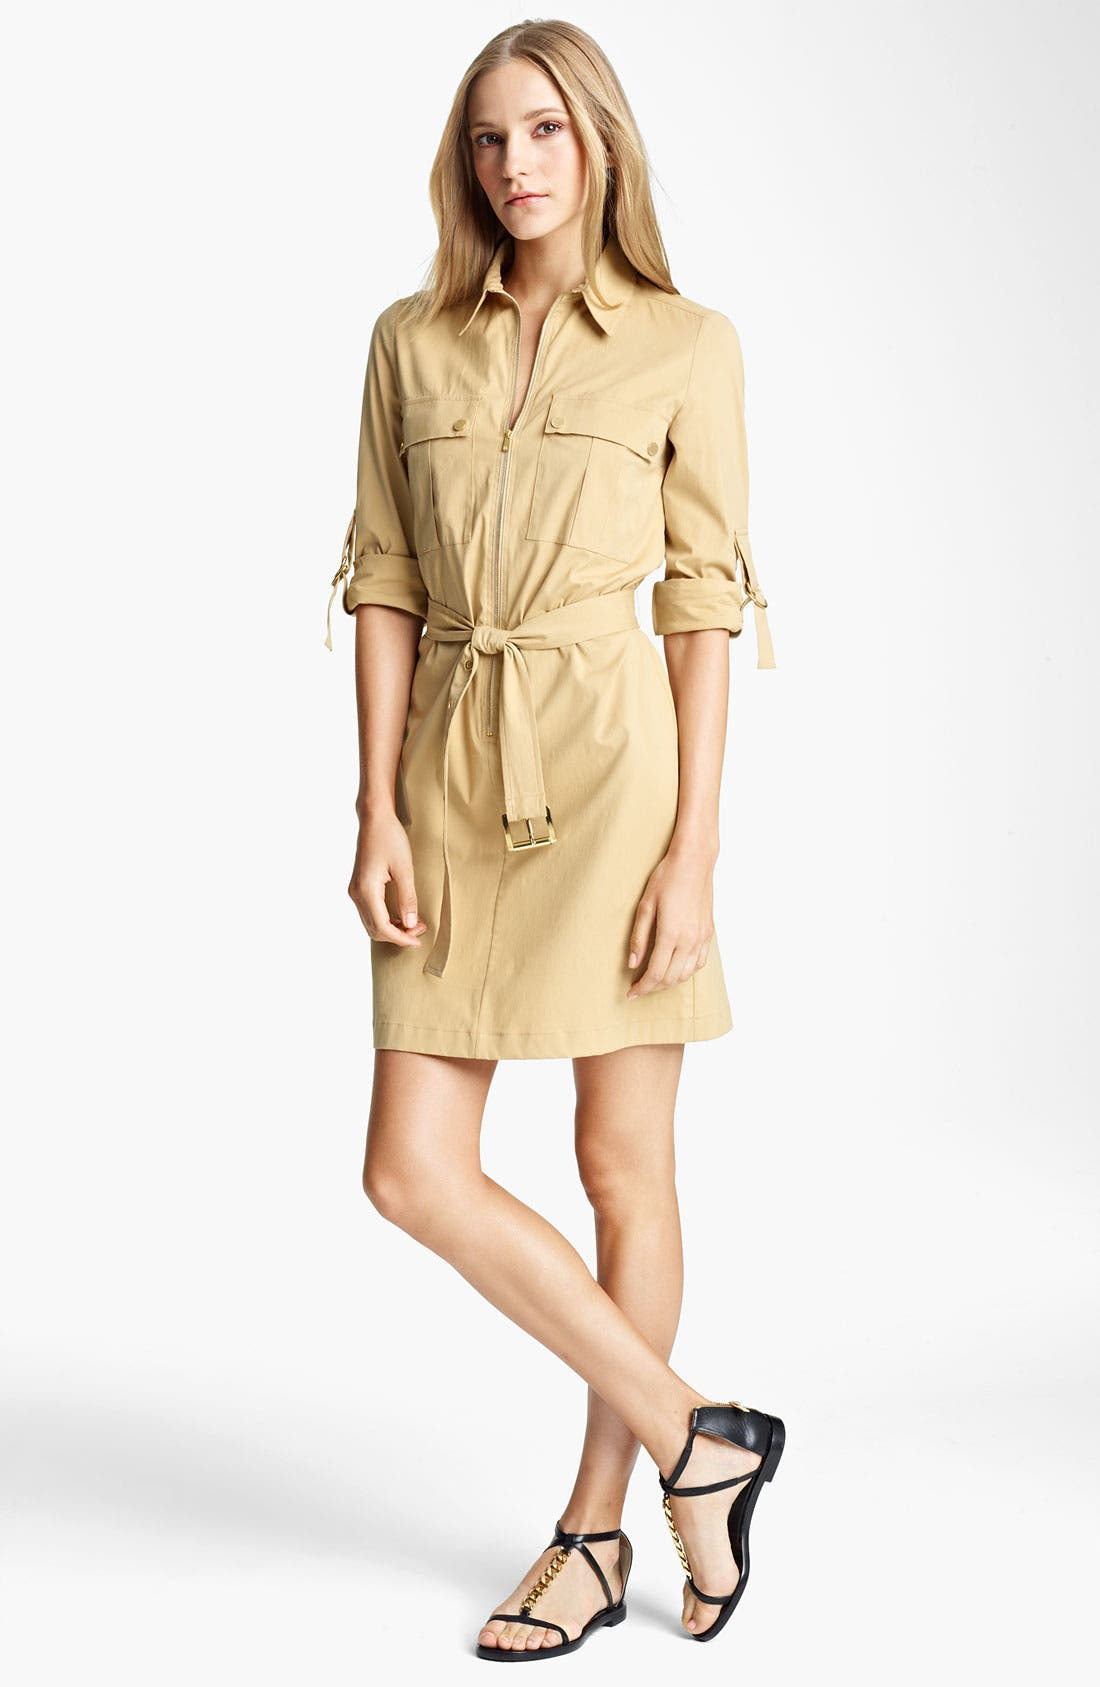 Main Image - Michael Kors Stretch Poplin Shirtdress